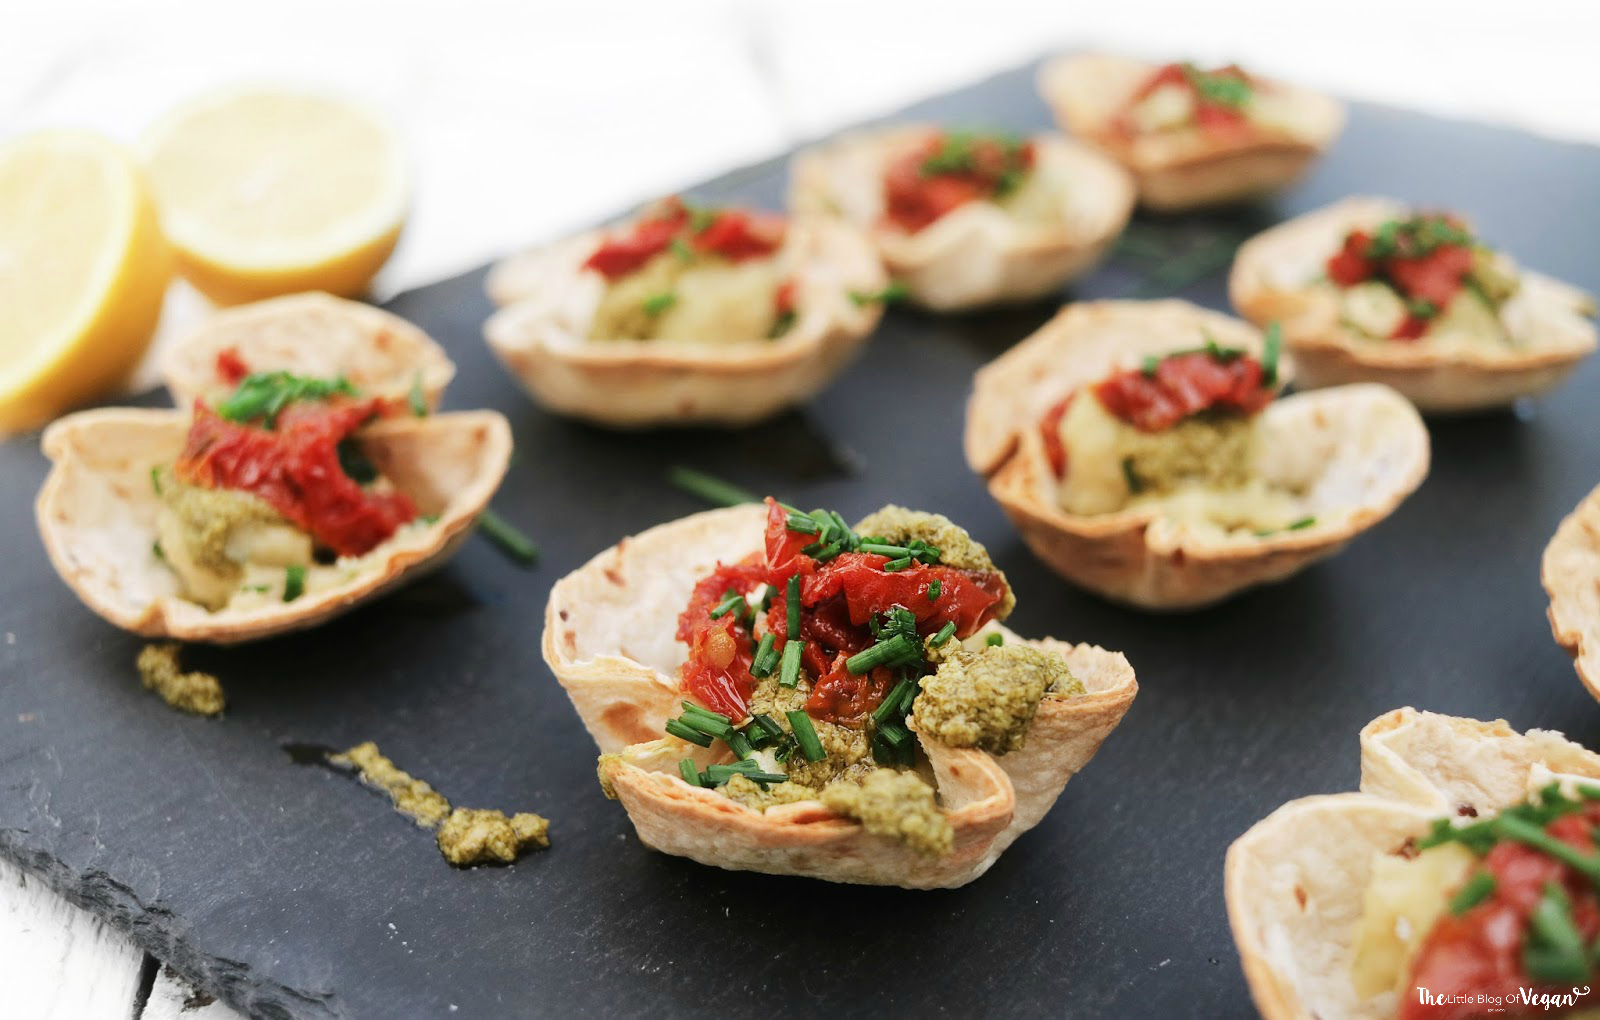 Gluten Wheat Free Party Food